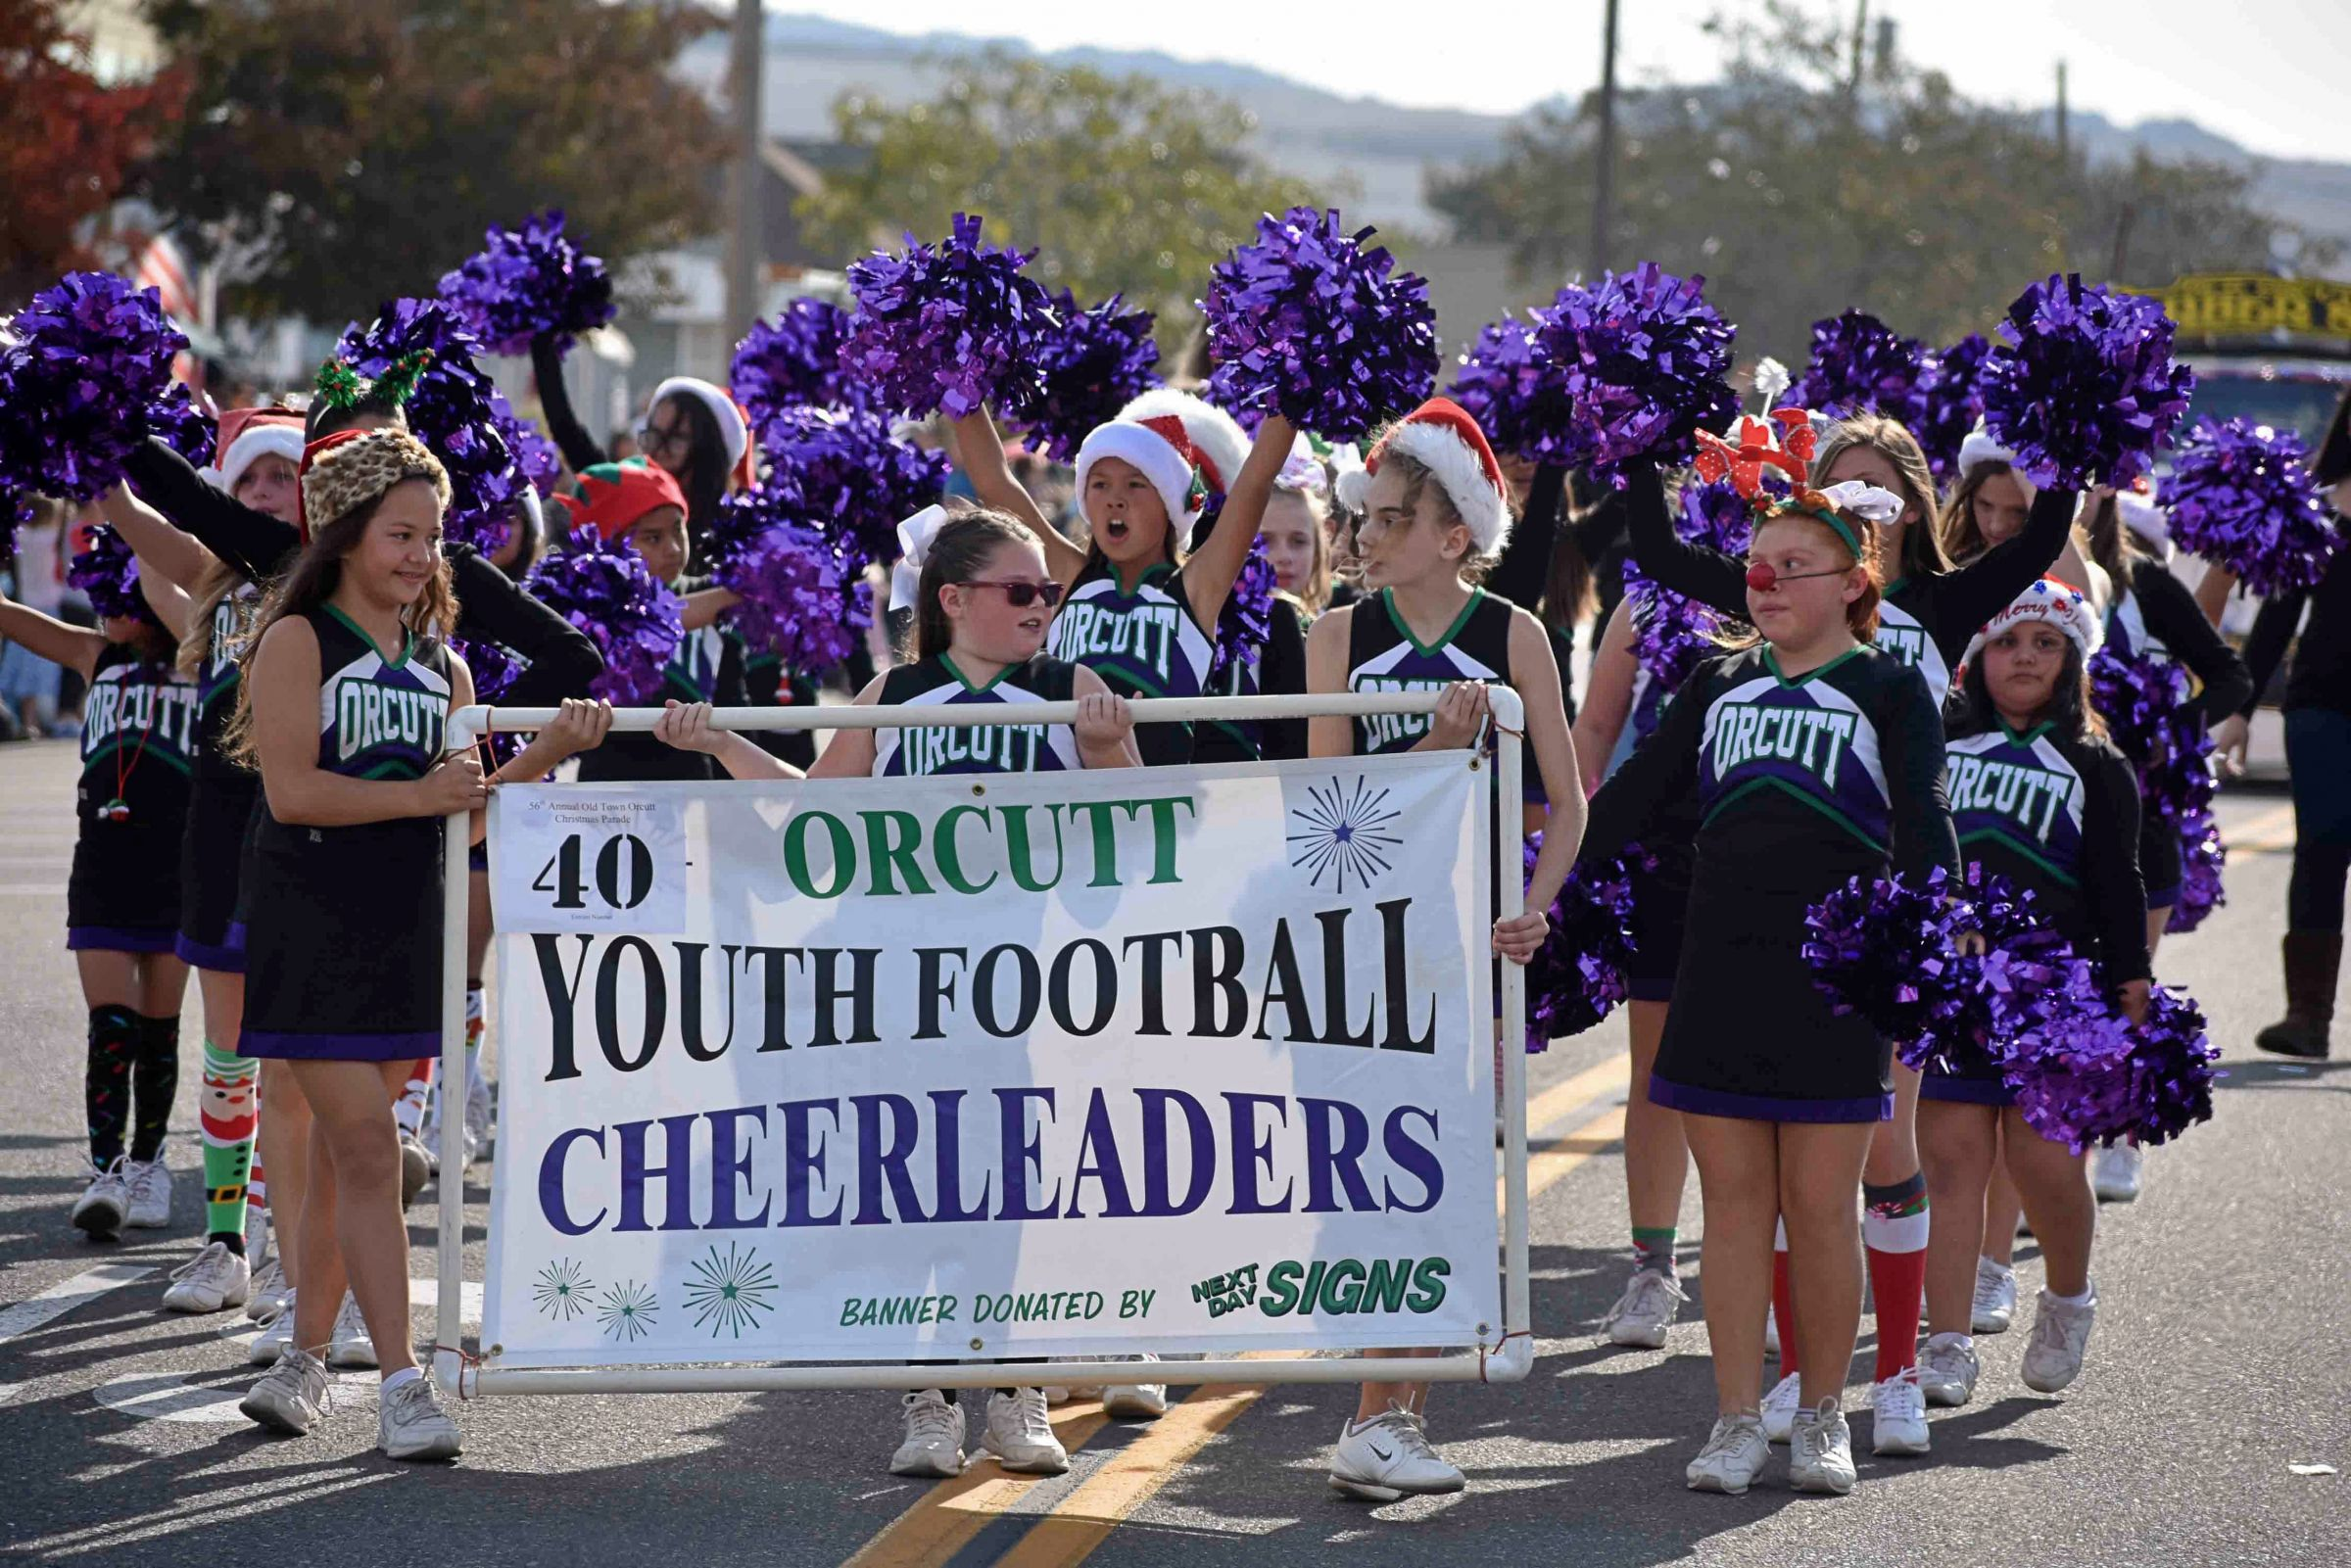 Orcutt Christmas Parade 2020 An Orcutt Christmas' Includes Parade Under Sunny — and Smoke Free